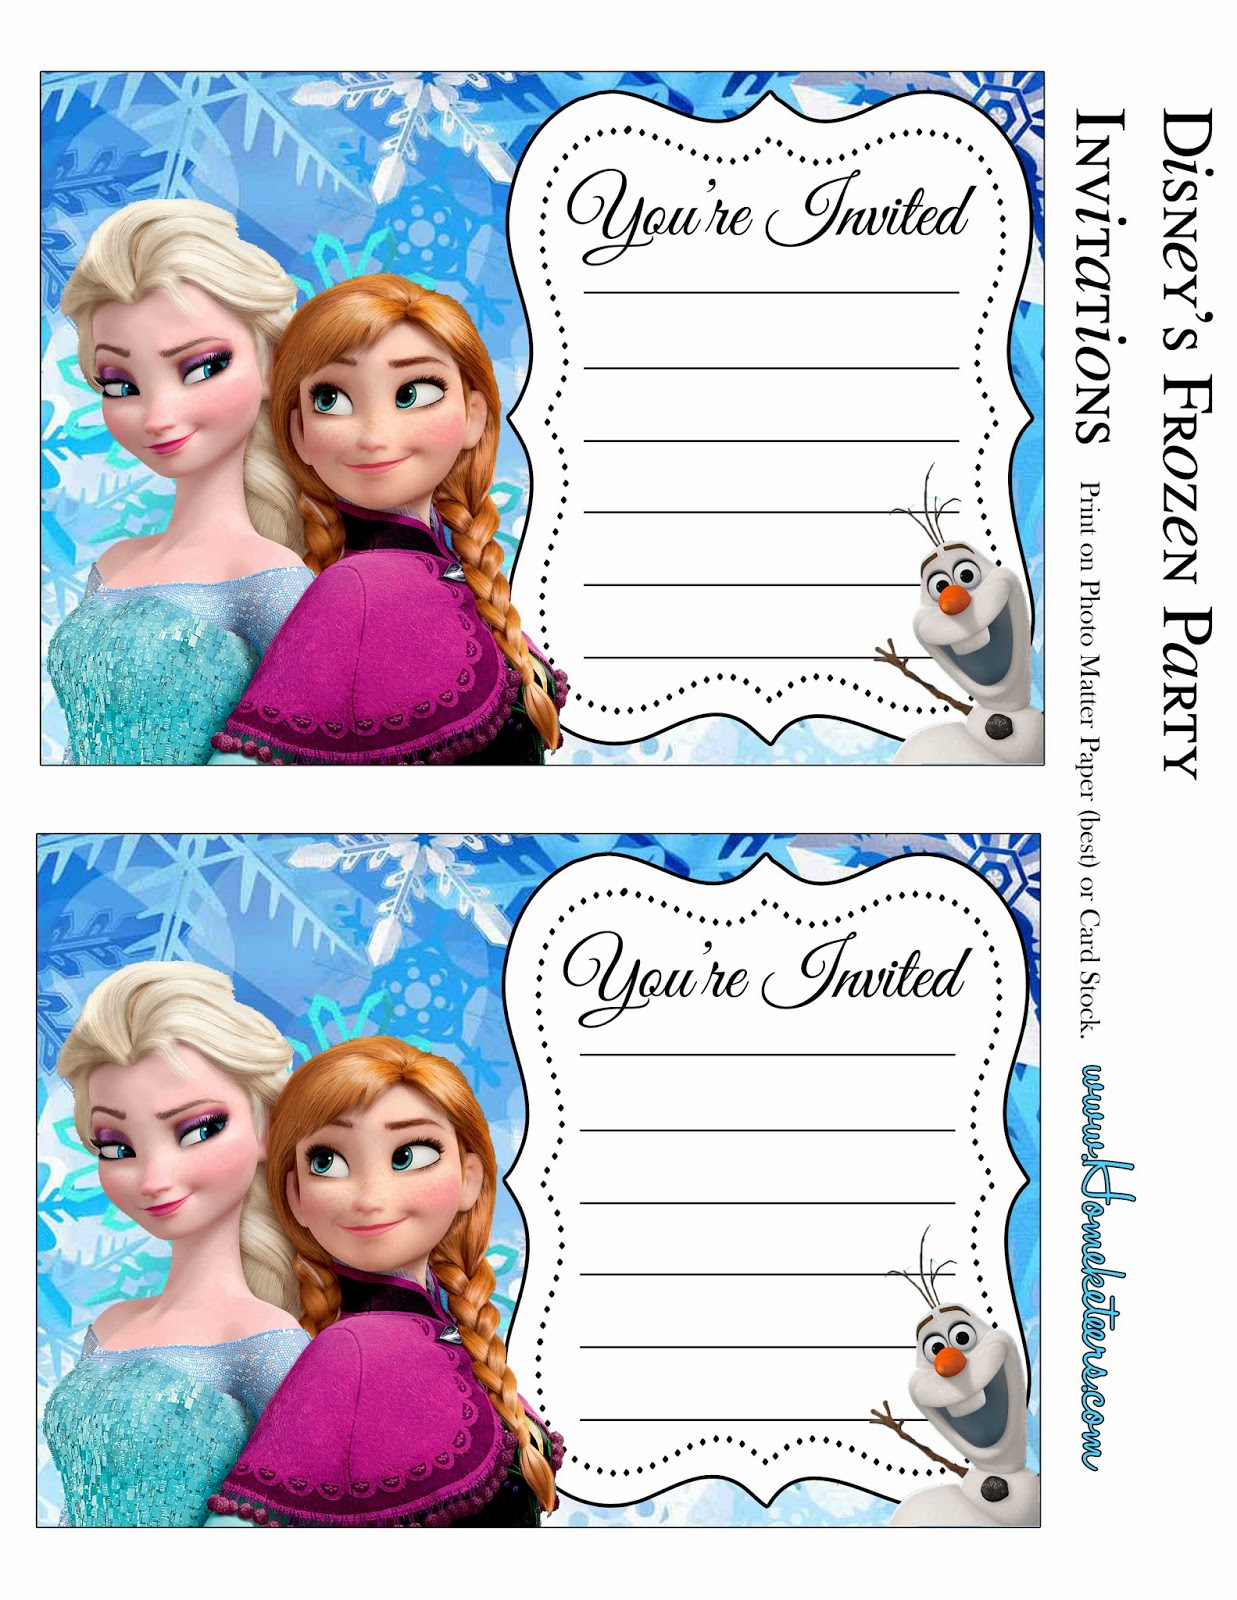 photograph regarding Free Printable Frozen Invites identified as Frozen Occasion: No cost Printable Invites. - Oh My Fiesta! within just